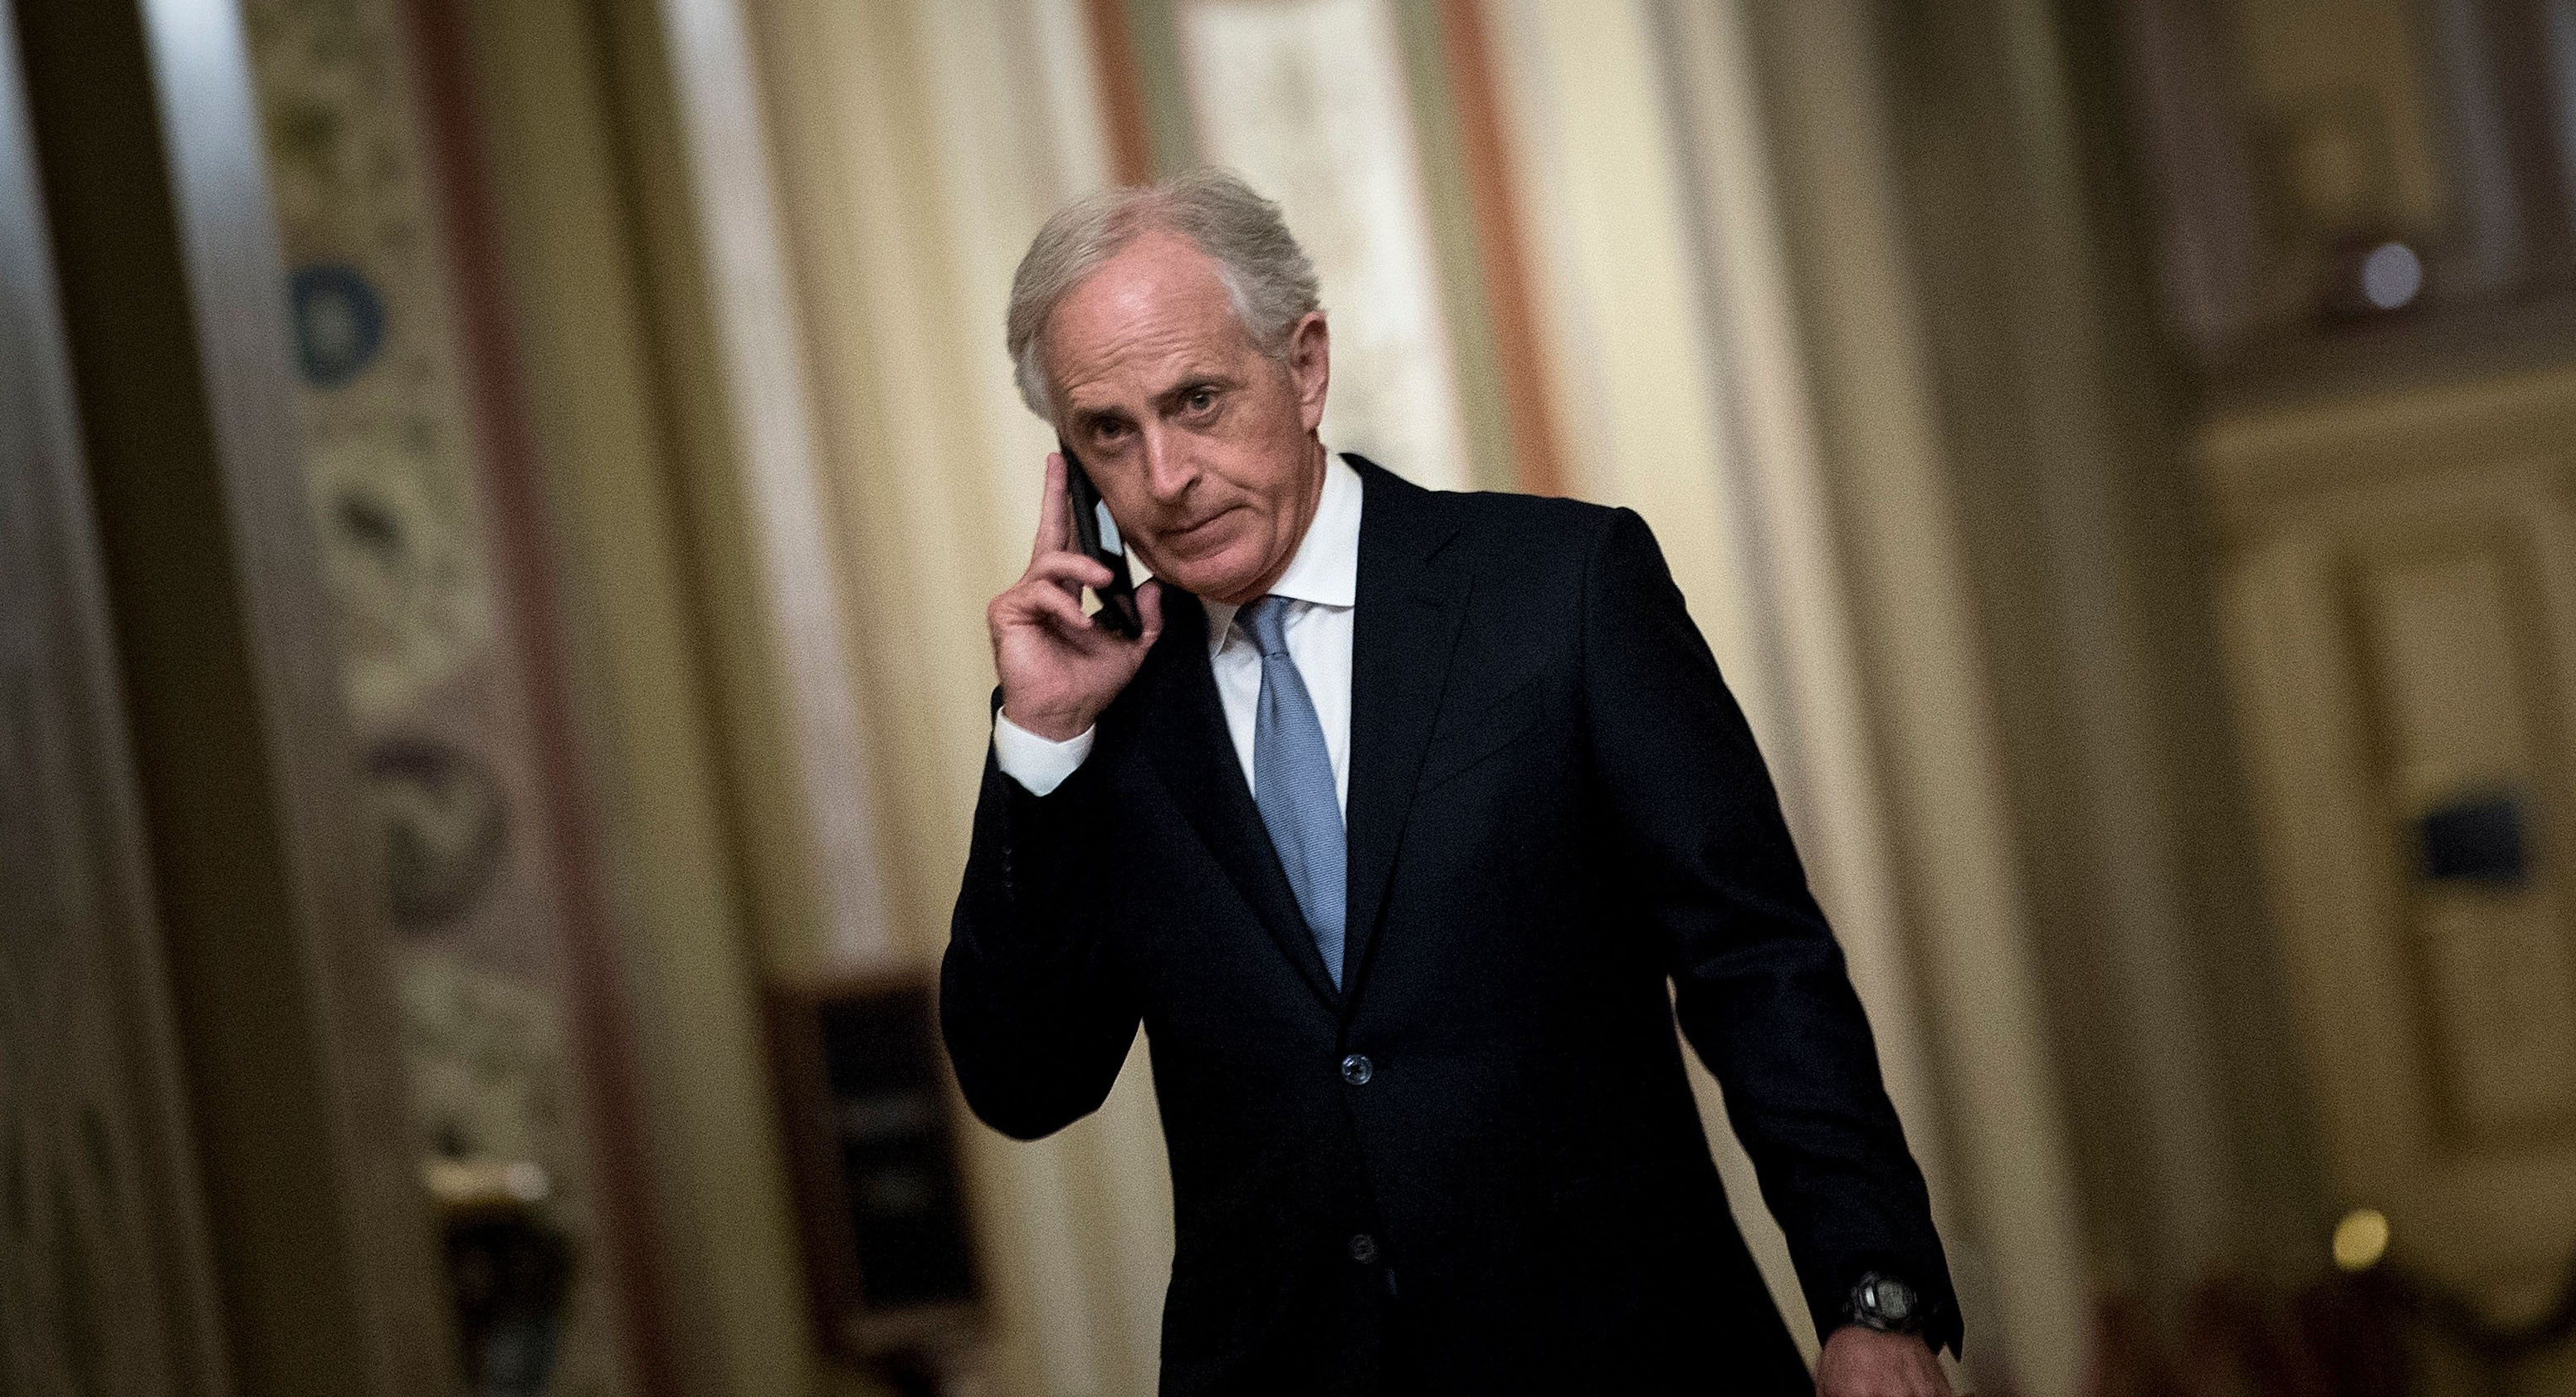 Corker says Democrat is ahead in race to succeed him - POLITICO